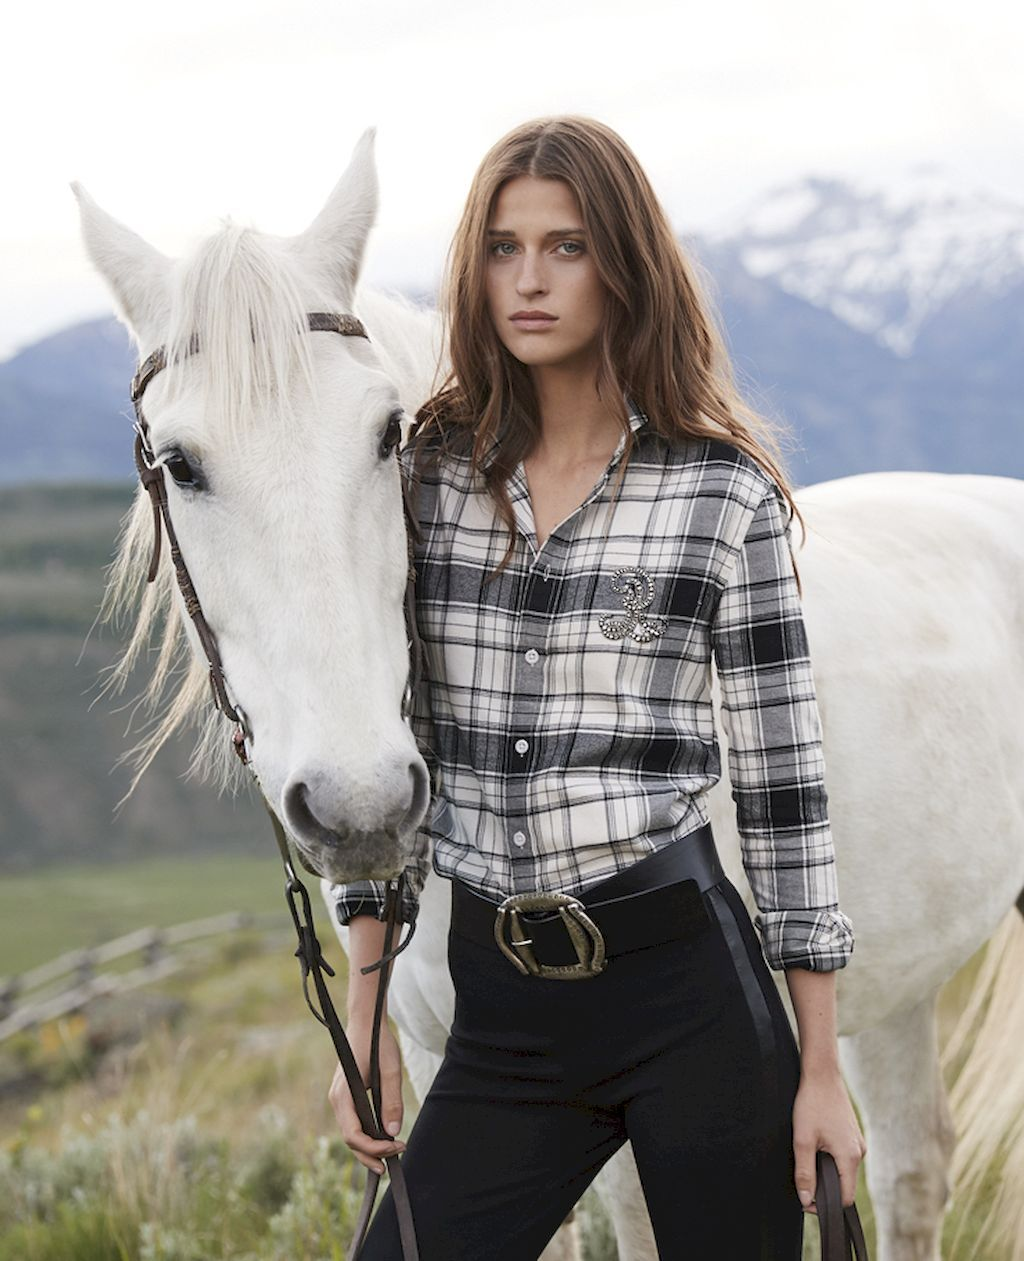 Flannel shirt outfit women   Best Daily Outfit to Wear Flannel Shirt For Woman